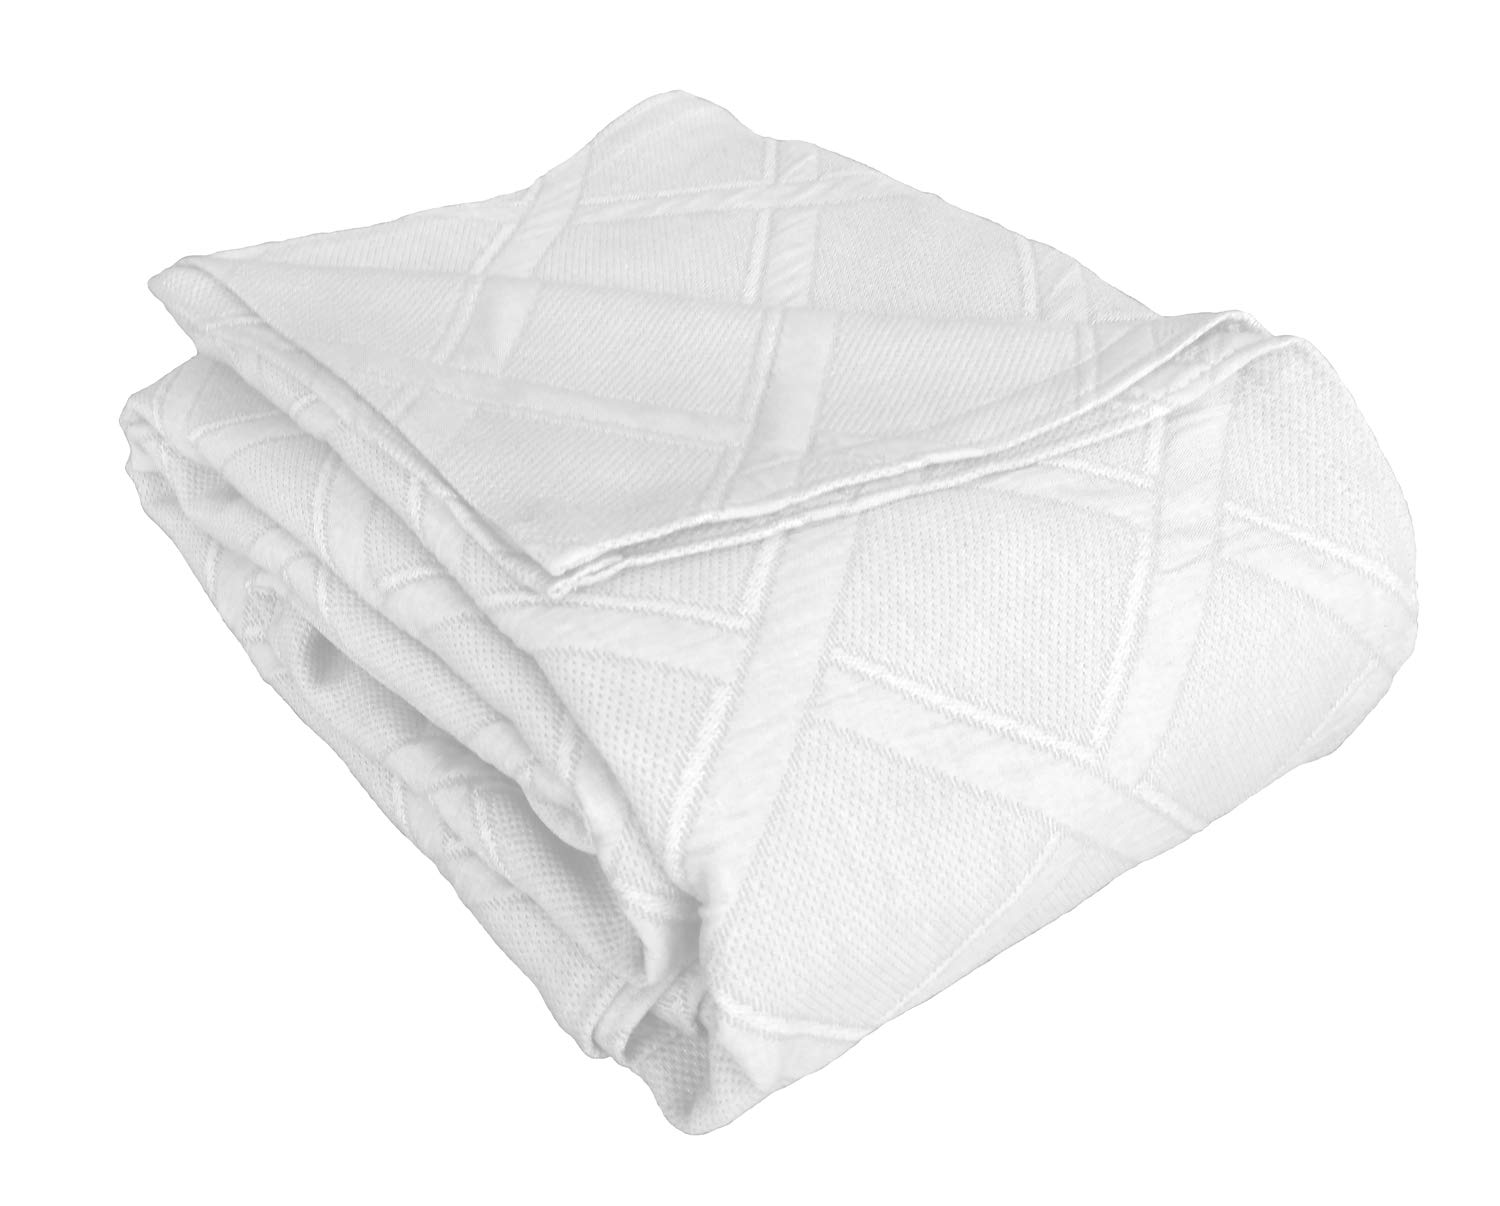 Europa Fine Linens Evora Matelasse Bedding, Coverlet Full/Queen Size 84-Inch by 96-Inch, White